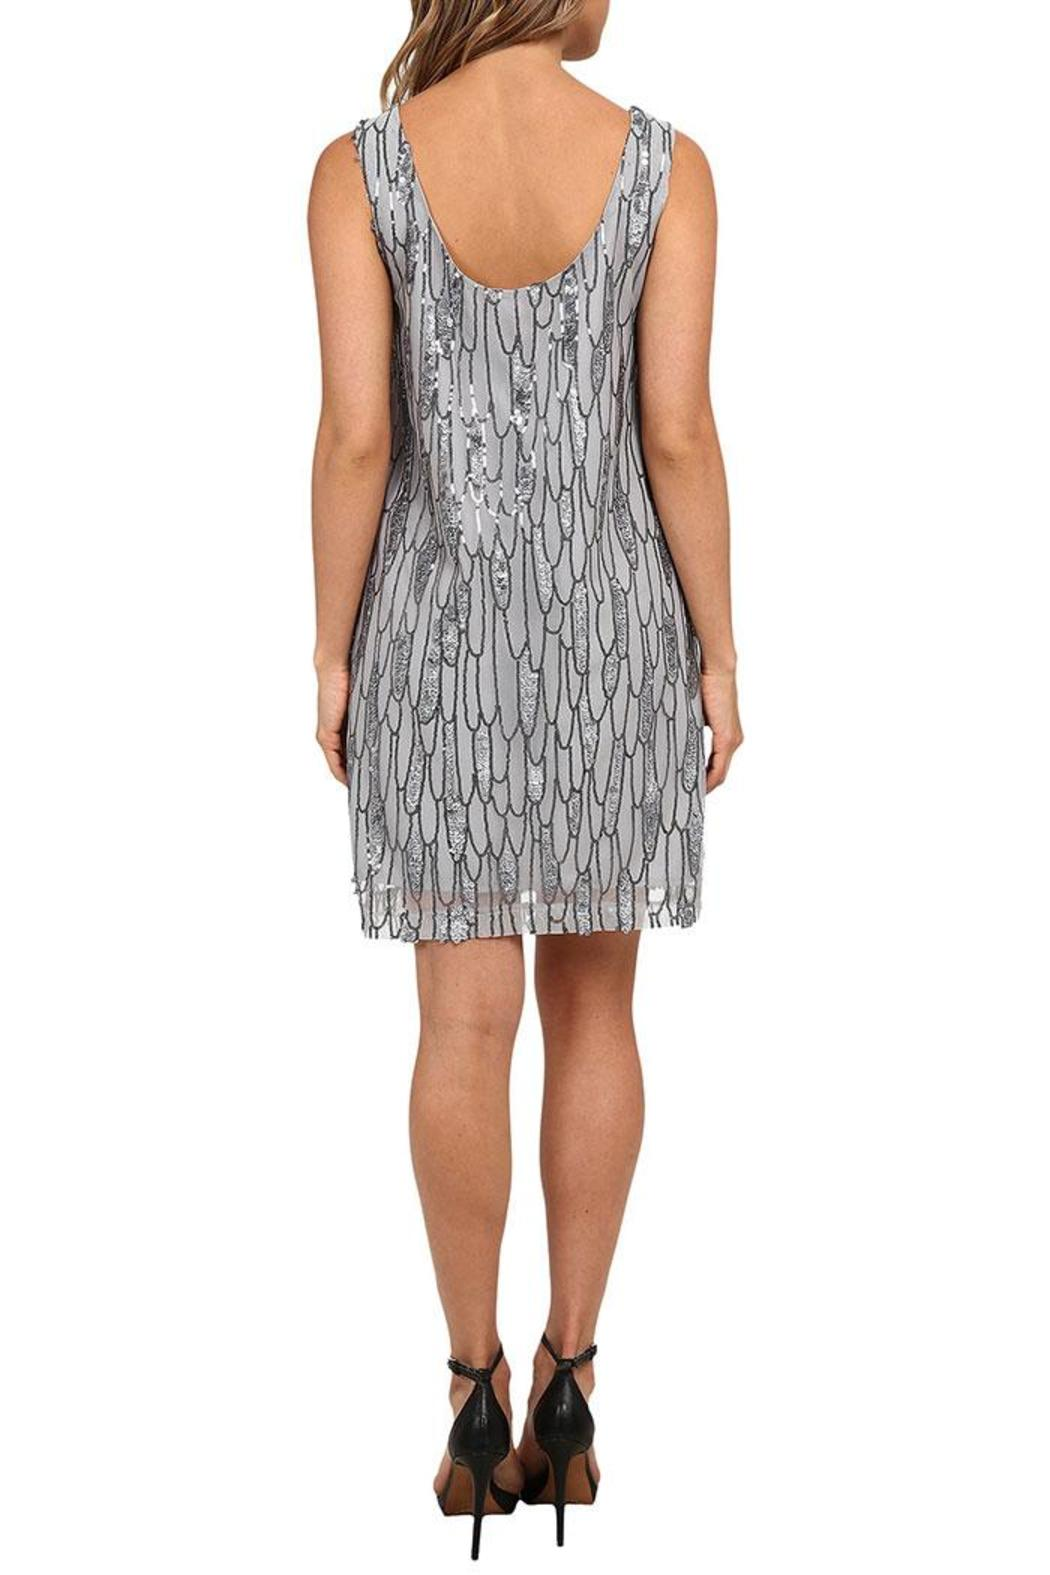 BB Dakota Sequin Shift Dress - Side Cropped Image